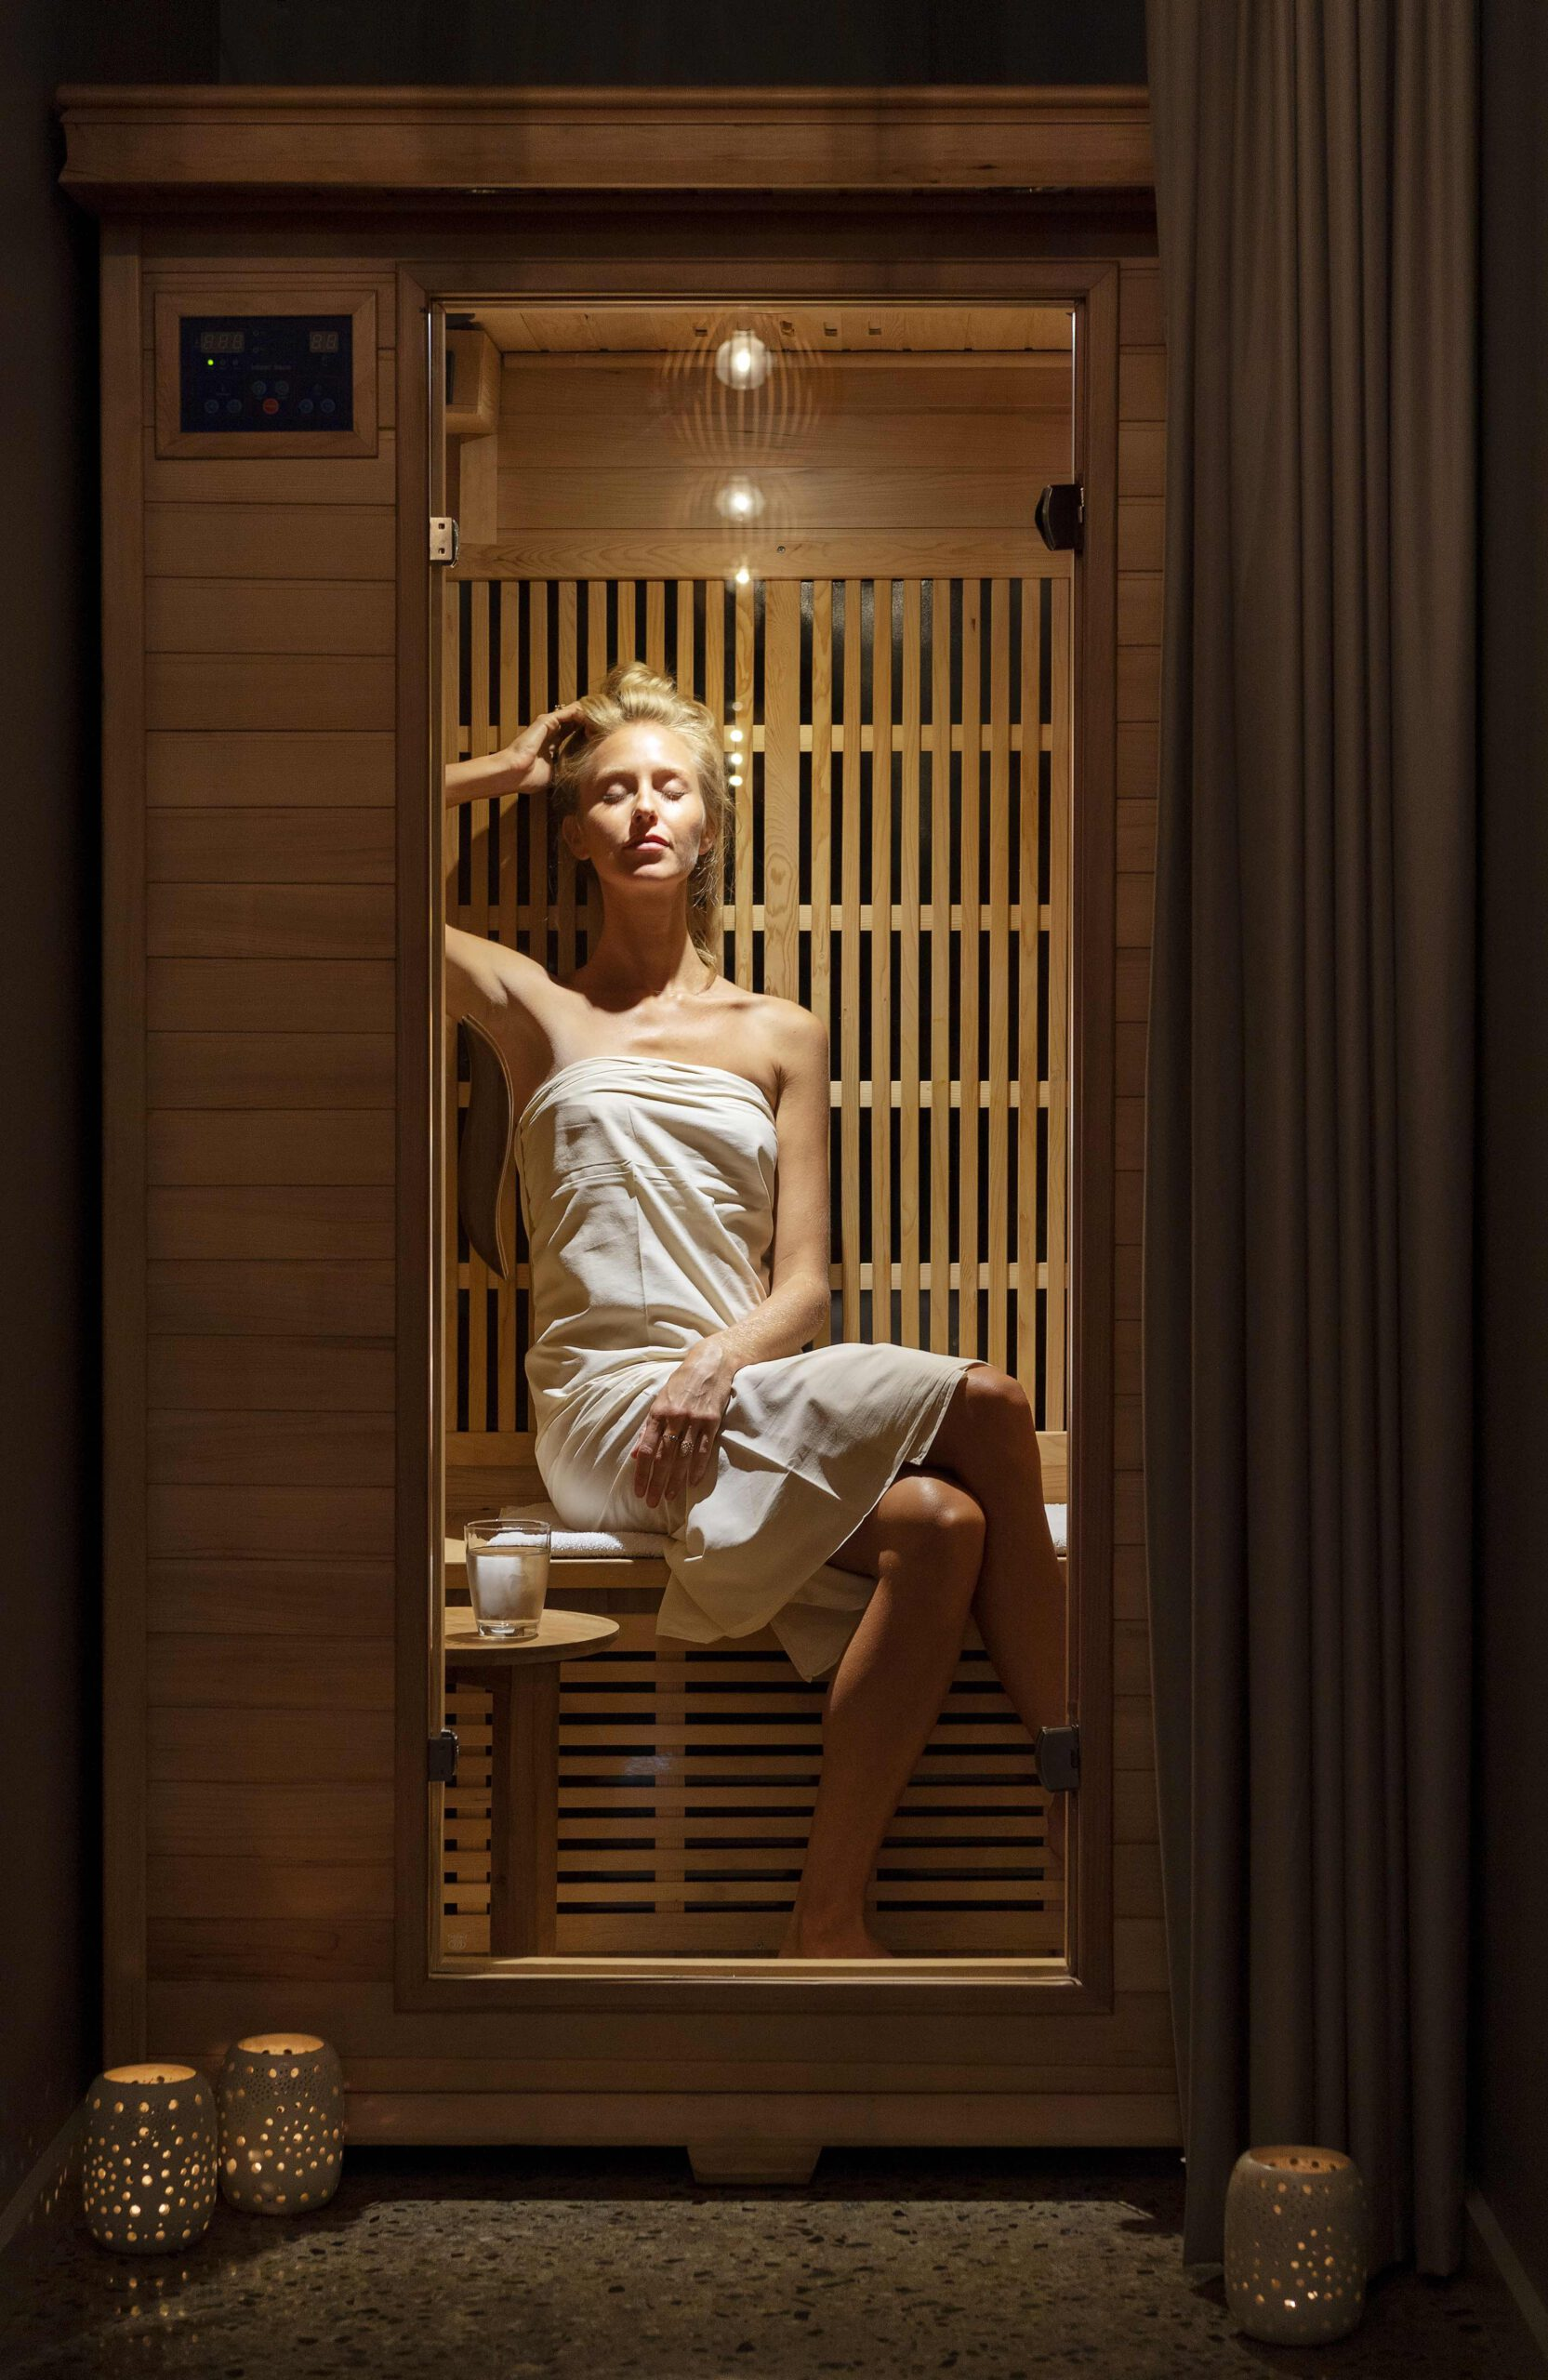 A woman poses in a sauna with a BODHI bath robe